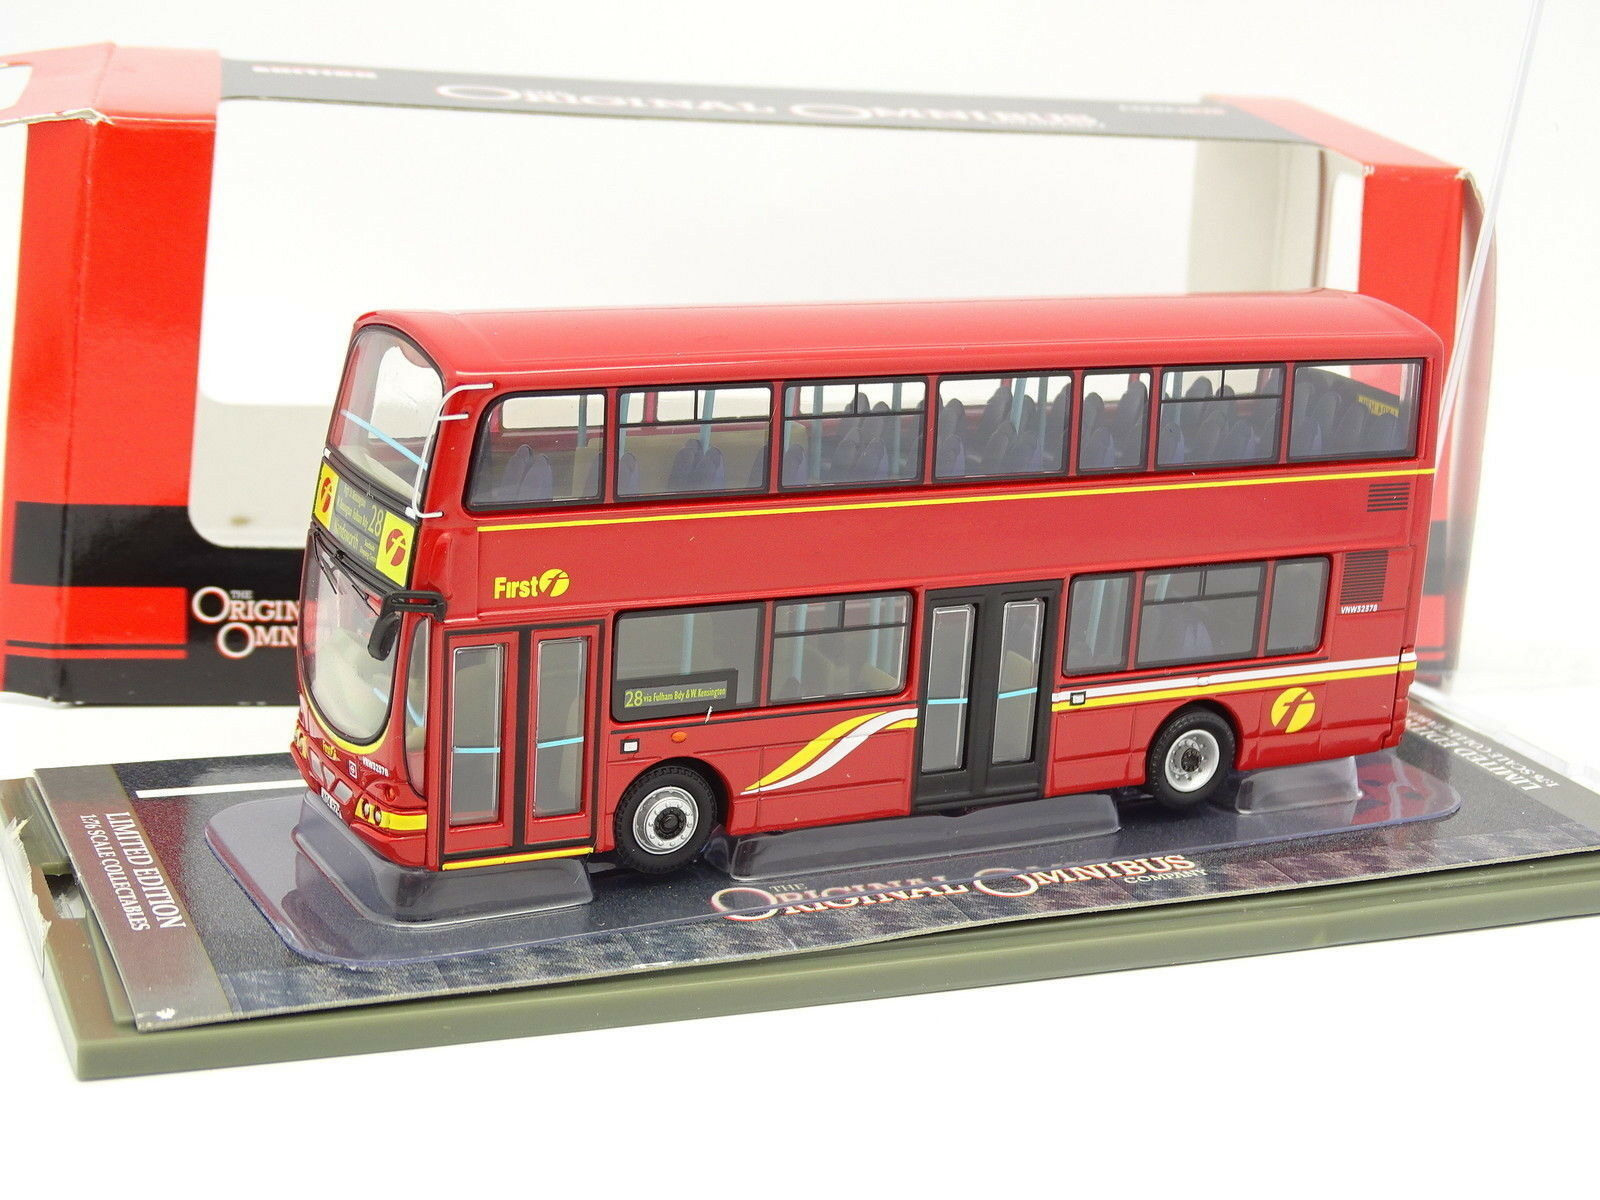 Corgi 1 76 - Bus Autobus First London WRIGHT ECLIPSE GEMINI